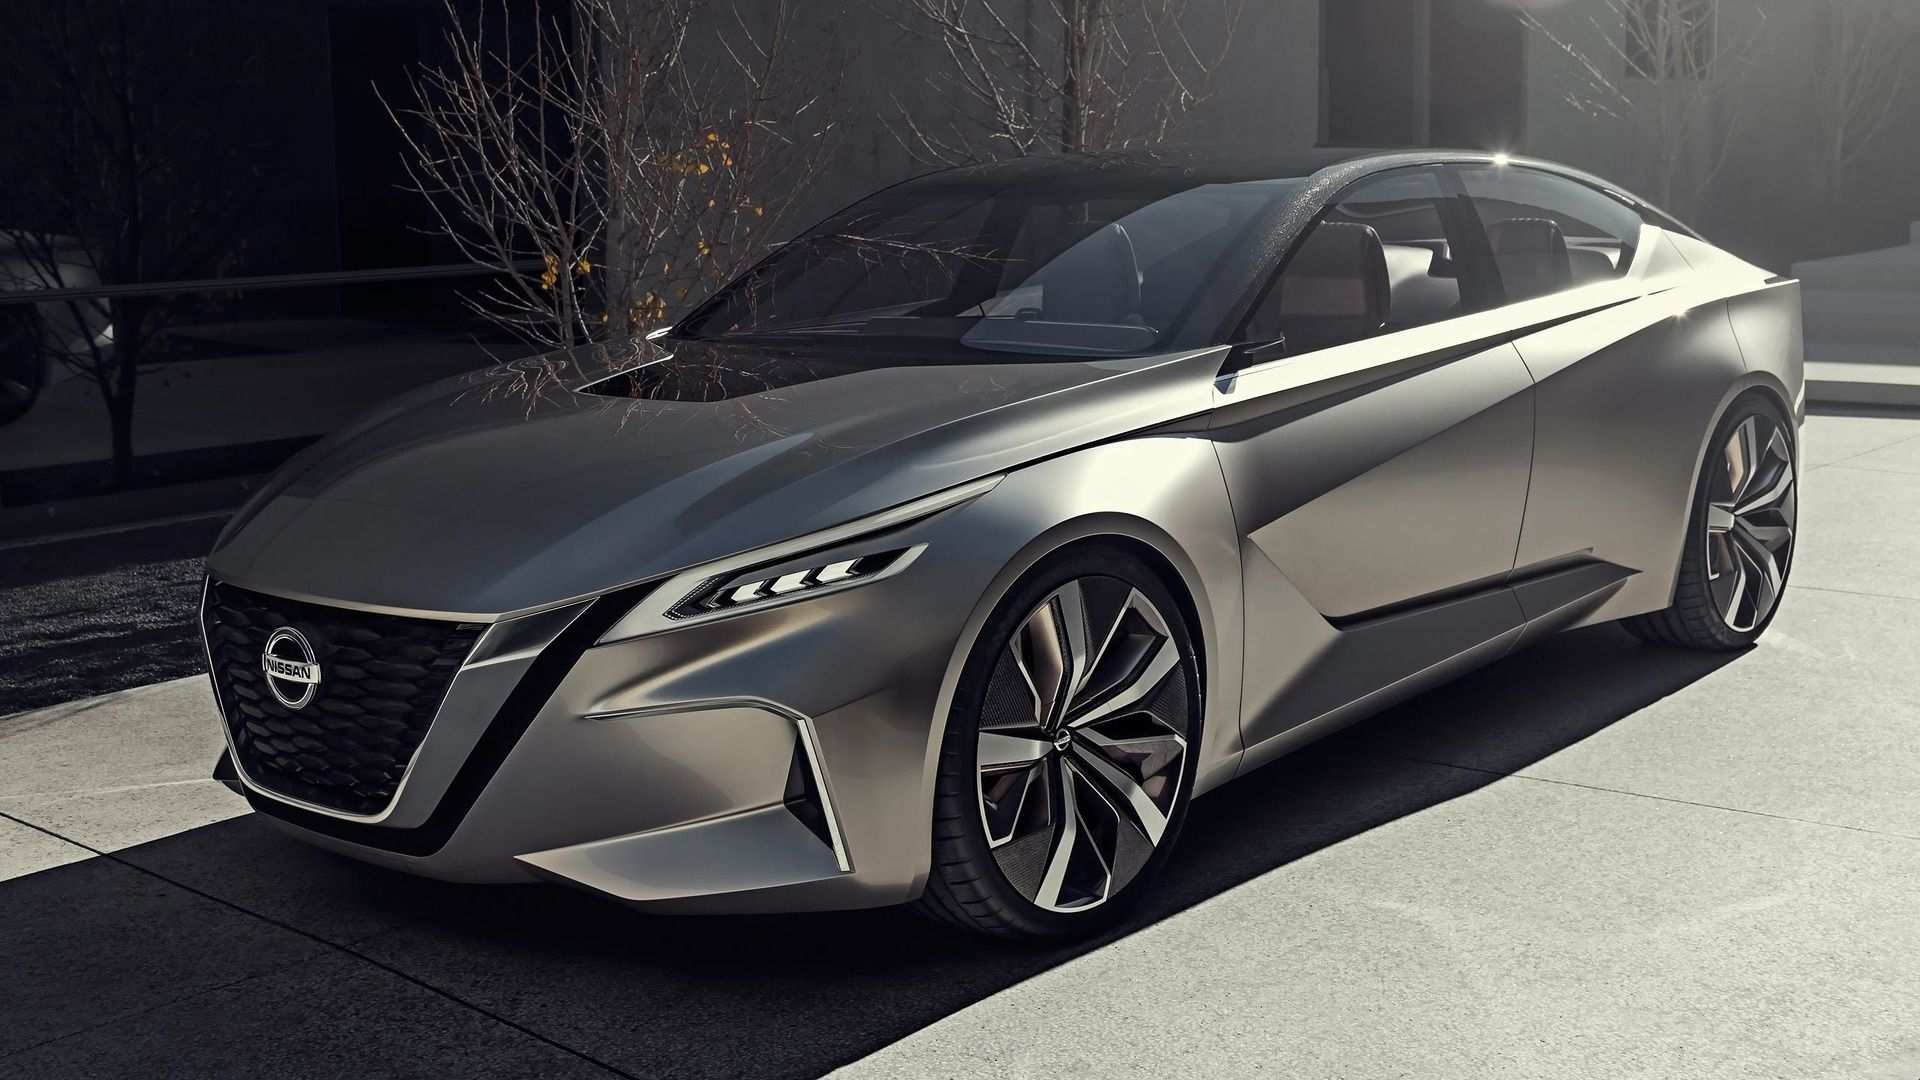 79 The Best Nissan Maxima 2020 Images